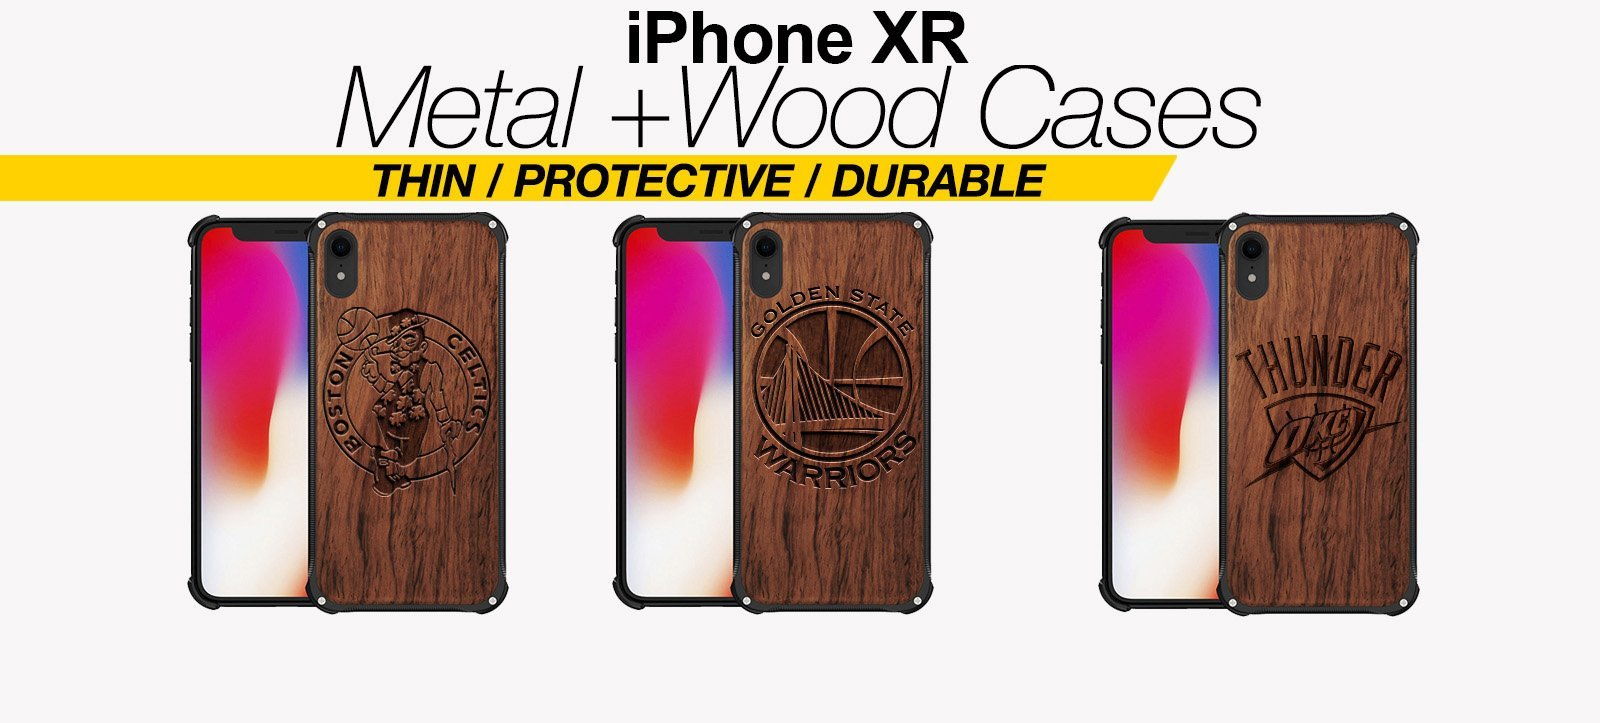 Wood And Metal iPhone XR Cases Best Wood And Metal iPhone XR Covers Thin Protective Eco Friendly